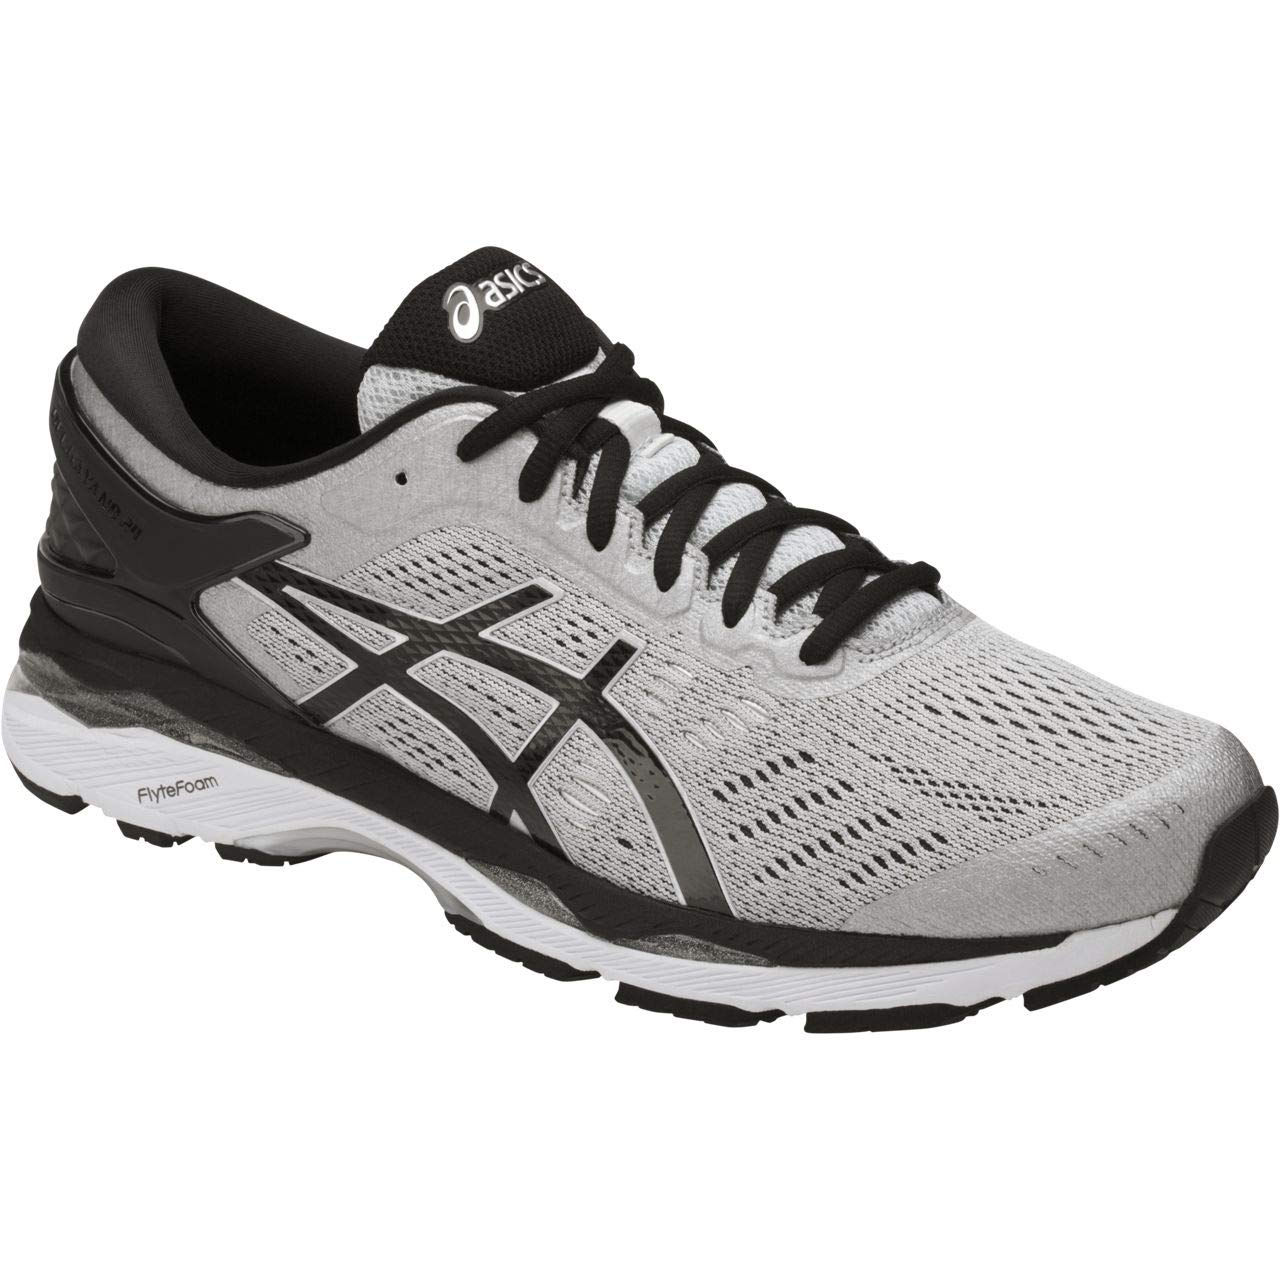 ASICS Mens Gel-Kayano 24 Running Shoe, Silver/Black/Mid Grey, 6 2E US by ASICS (Image #1)